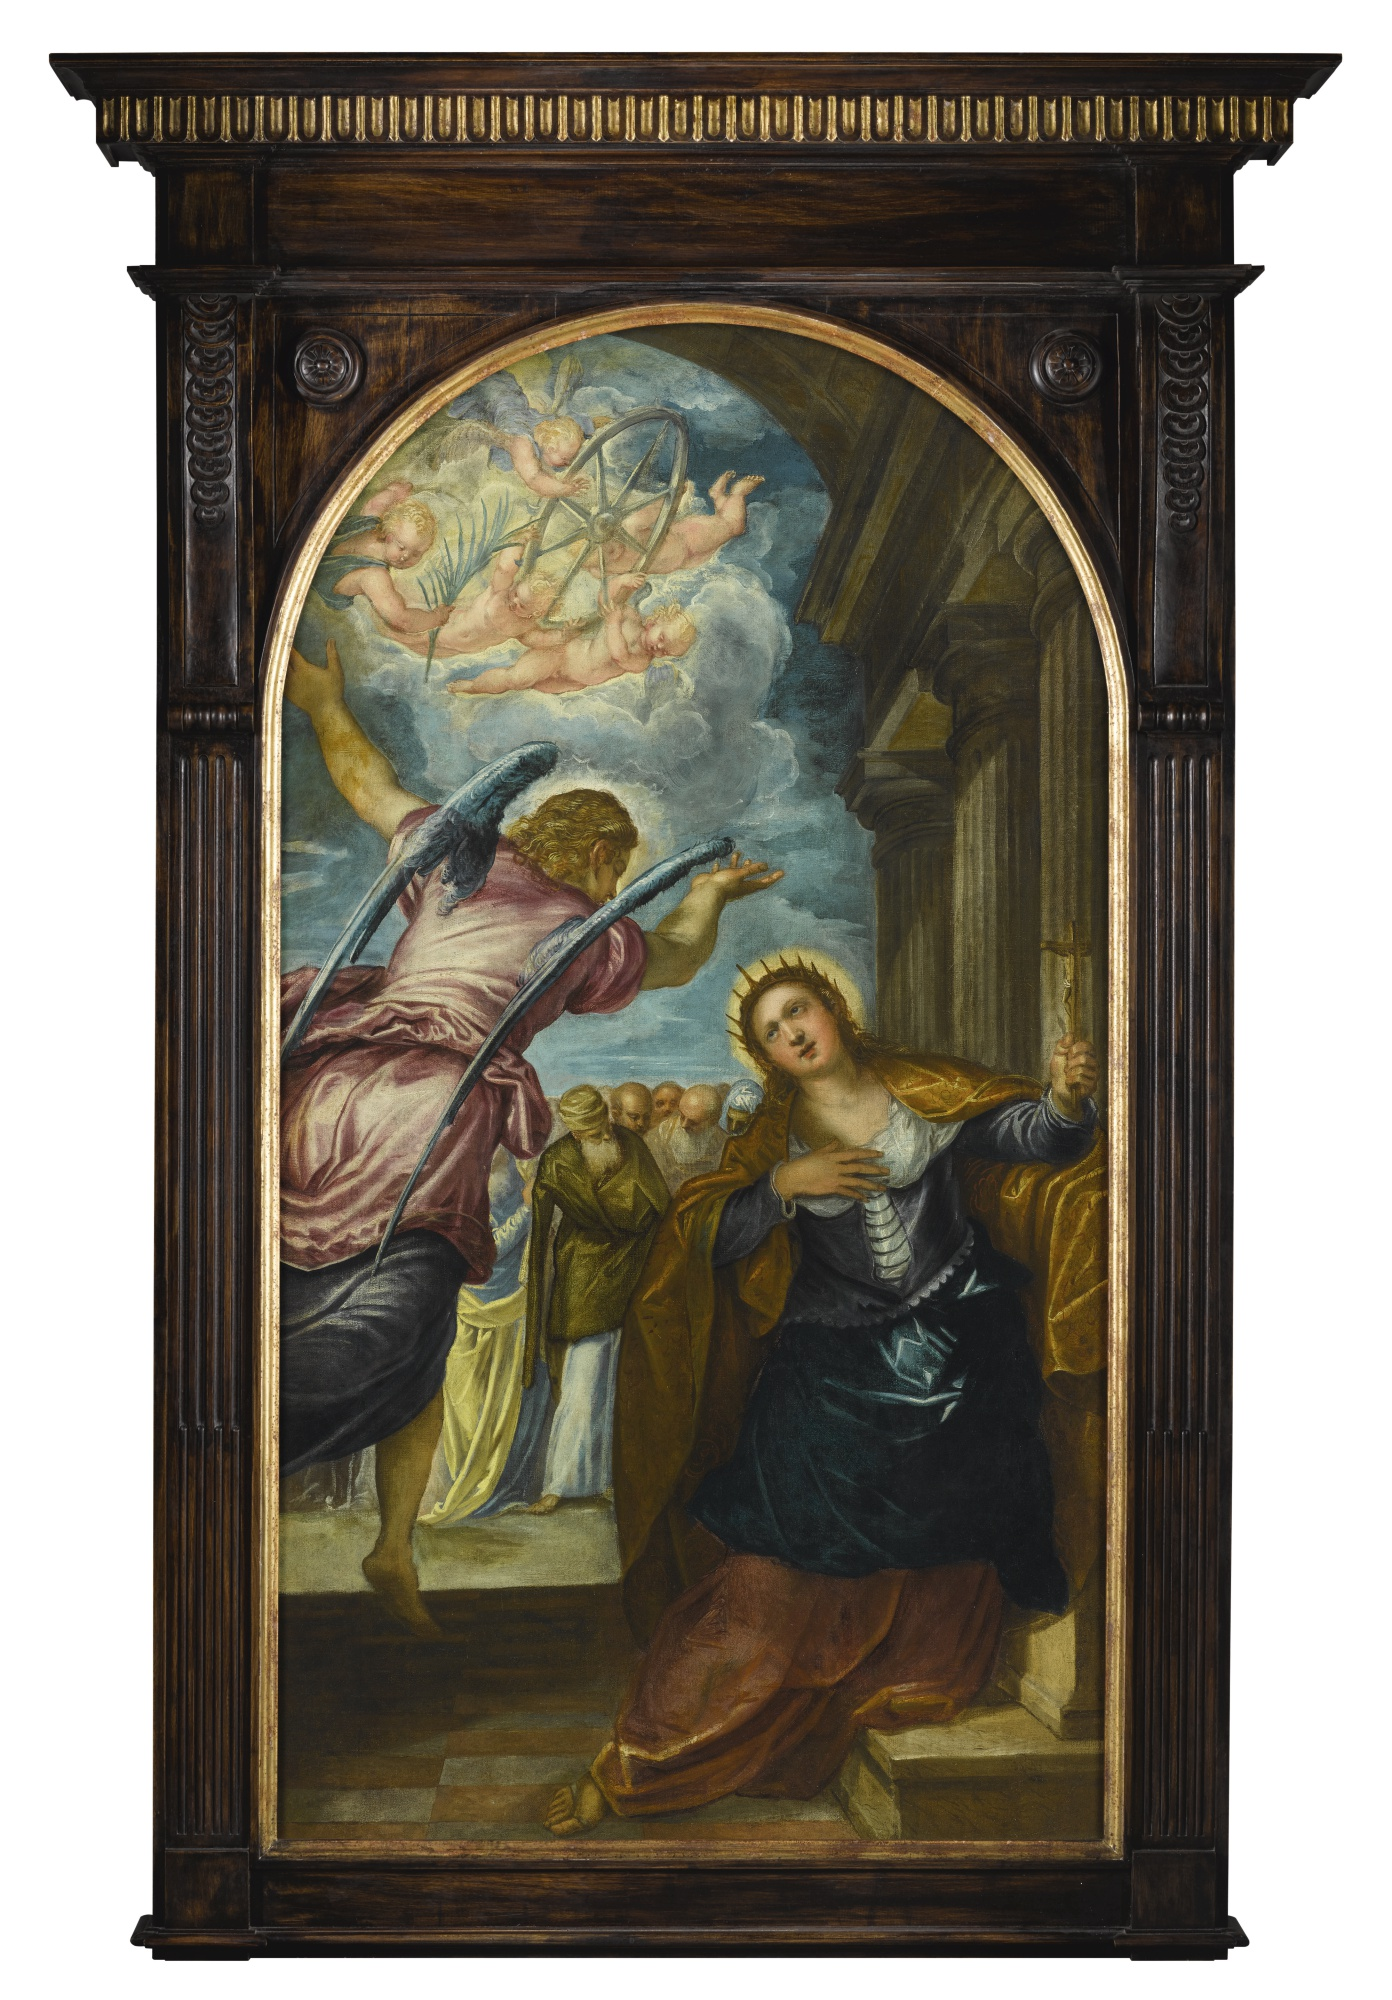 Saint Catherine and angel by Tintoretto (D.Bowie's collection).jpg